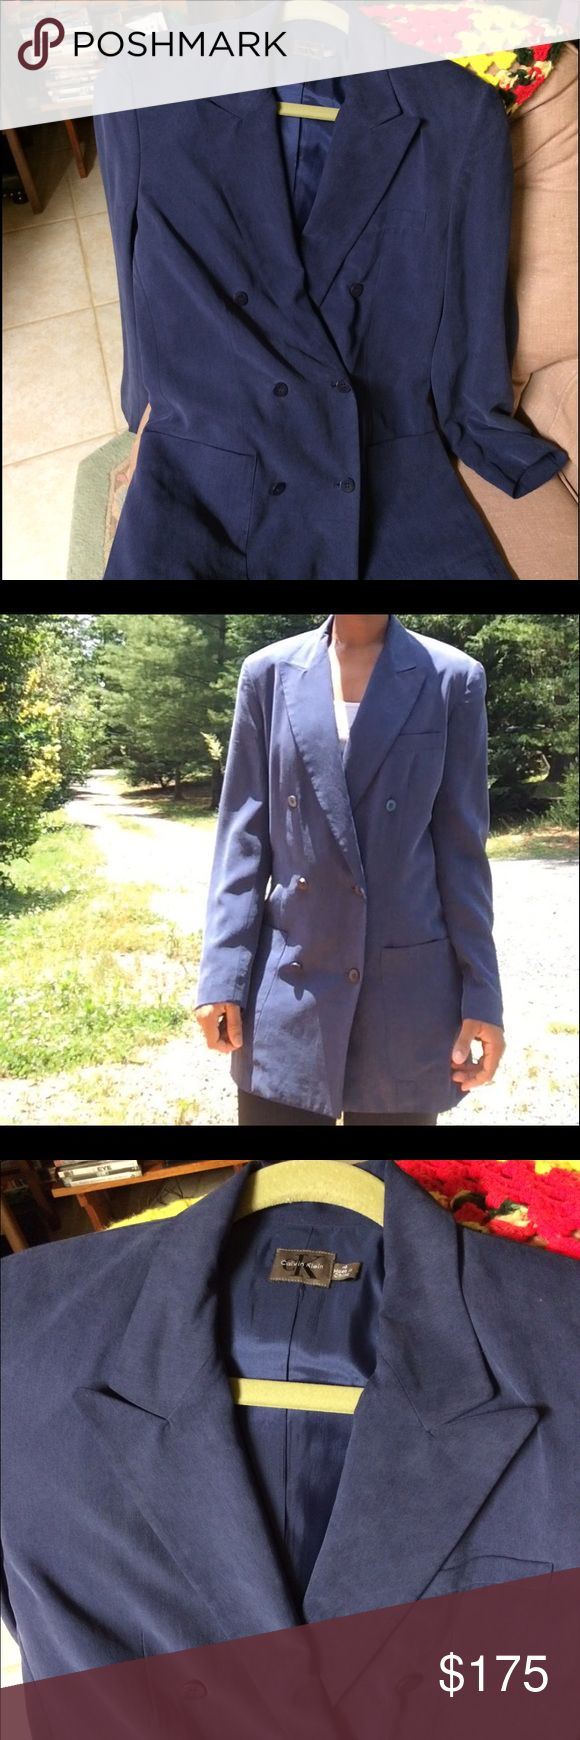 Calvin Klein Sportcoat Indigo Calvin Klein 100% silk jacket. Product is free from stains and kept in a smoke/pet free environment Calvin Klein Collection Jackets & Coats Blazers